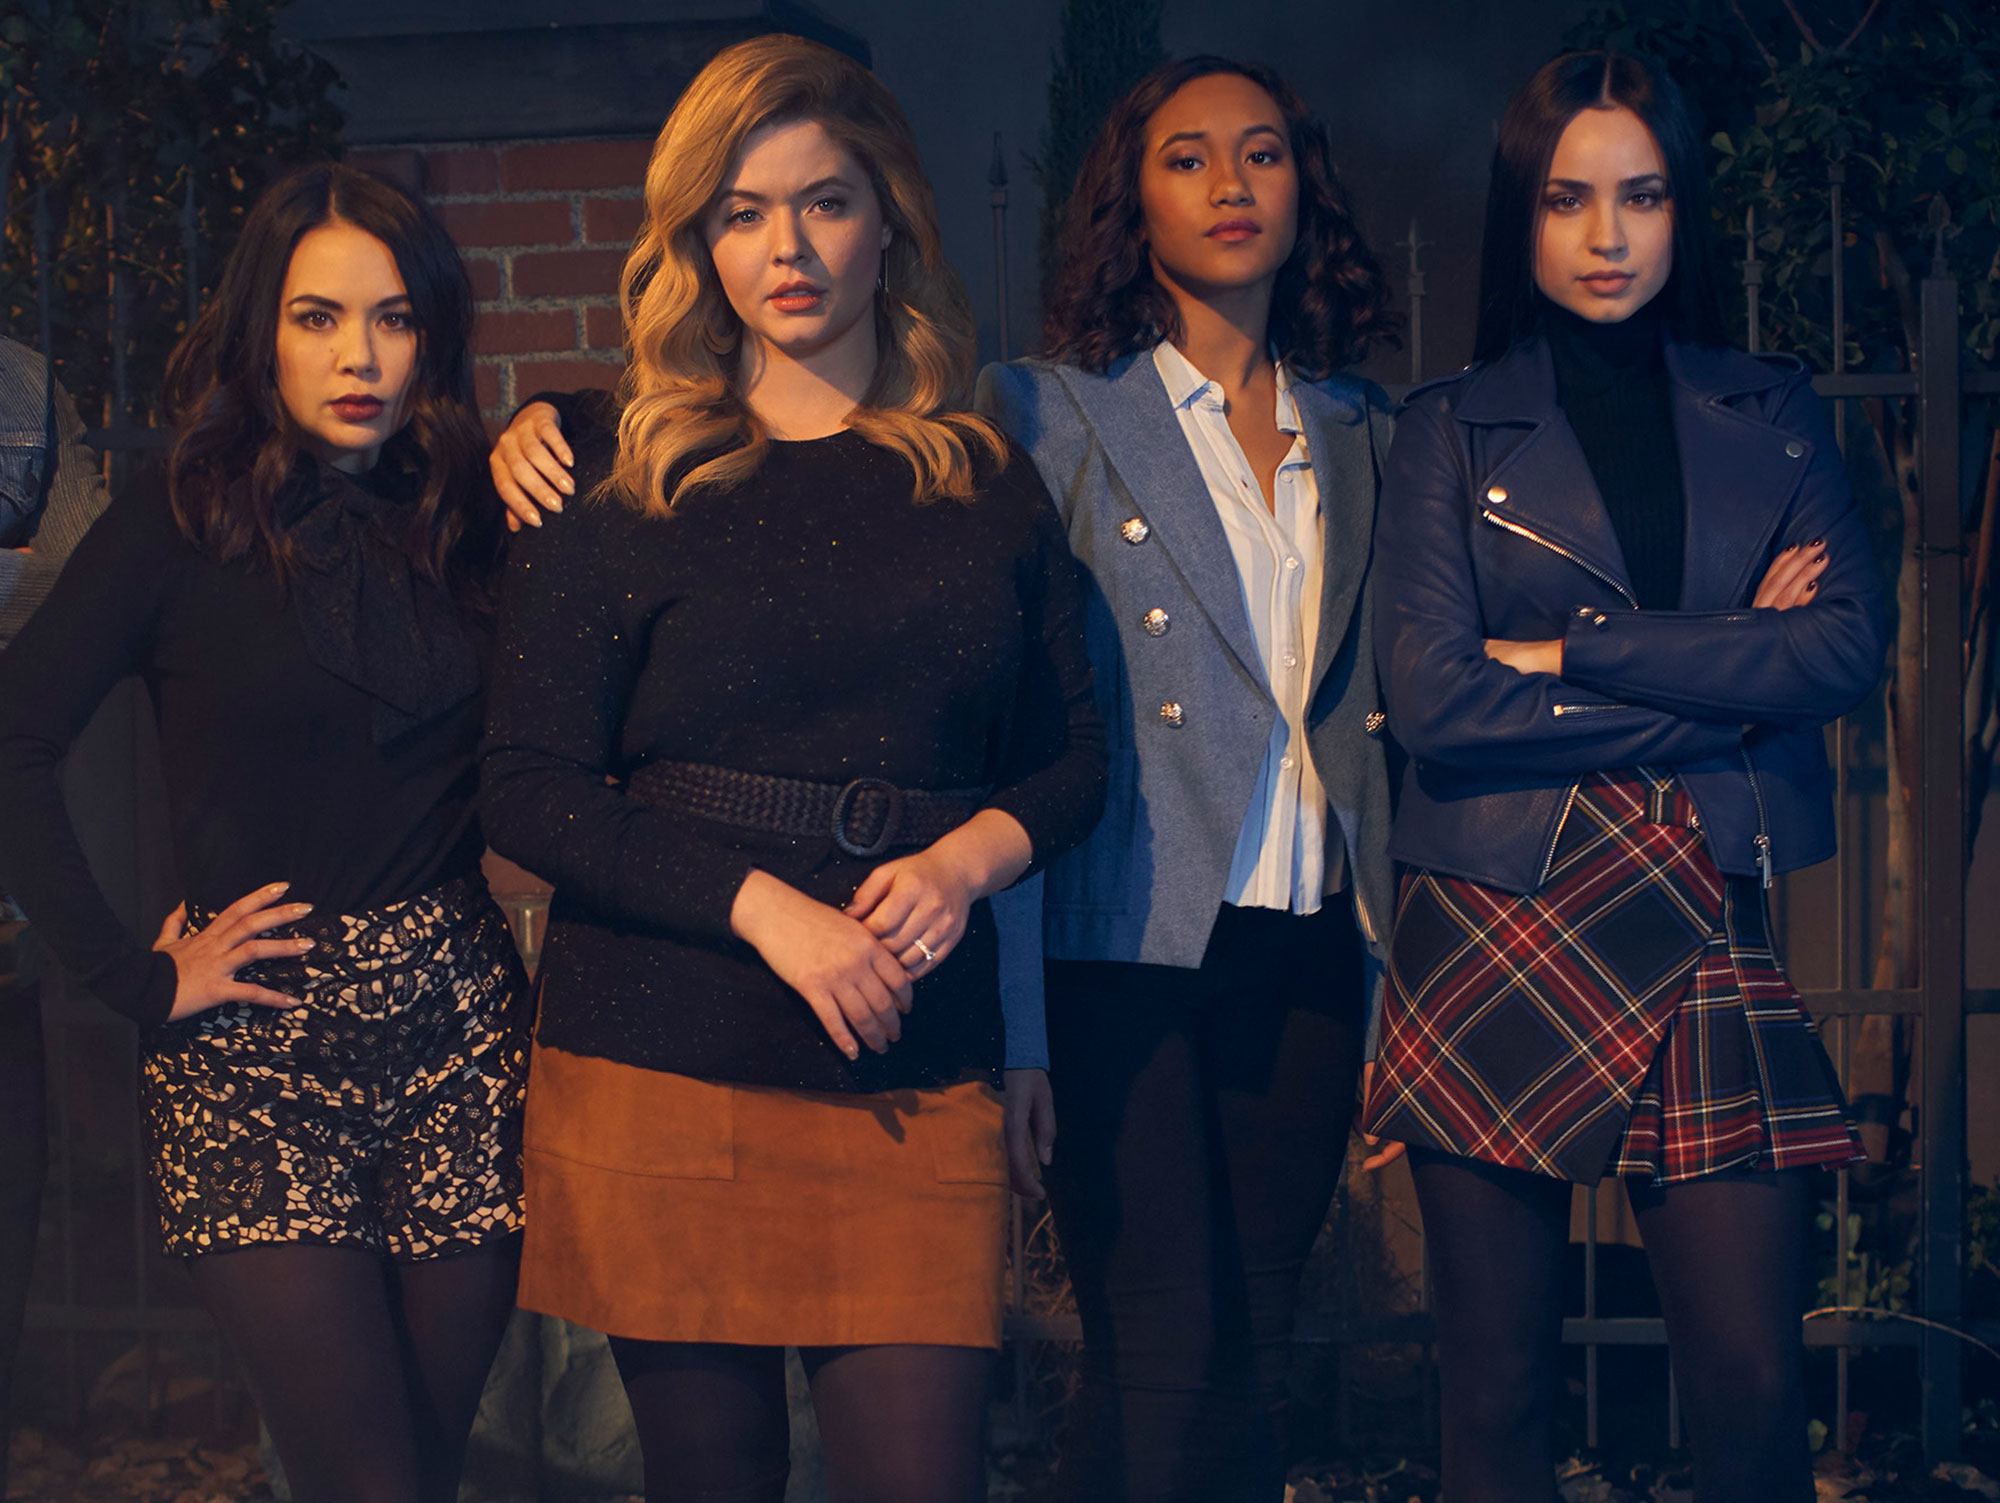 """Janel Parrish as Mona, Sasha Pieterse as Alison, Sydney Park as Caitlin, and Sofia Carson as Ava. Pretty Little Liars Fans Can Get a Free Makeup Application to Celebrate New Series The Perfectionists - Freeform's """"Pretty Little Liars: The Perfectionists"""" staring Janel Parrish as Mona, Sasha Pieterse as Alison, Sydney Park as Caitlin, and Sofia Carson as Ava."""